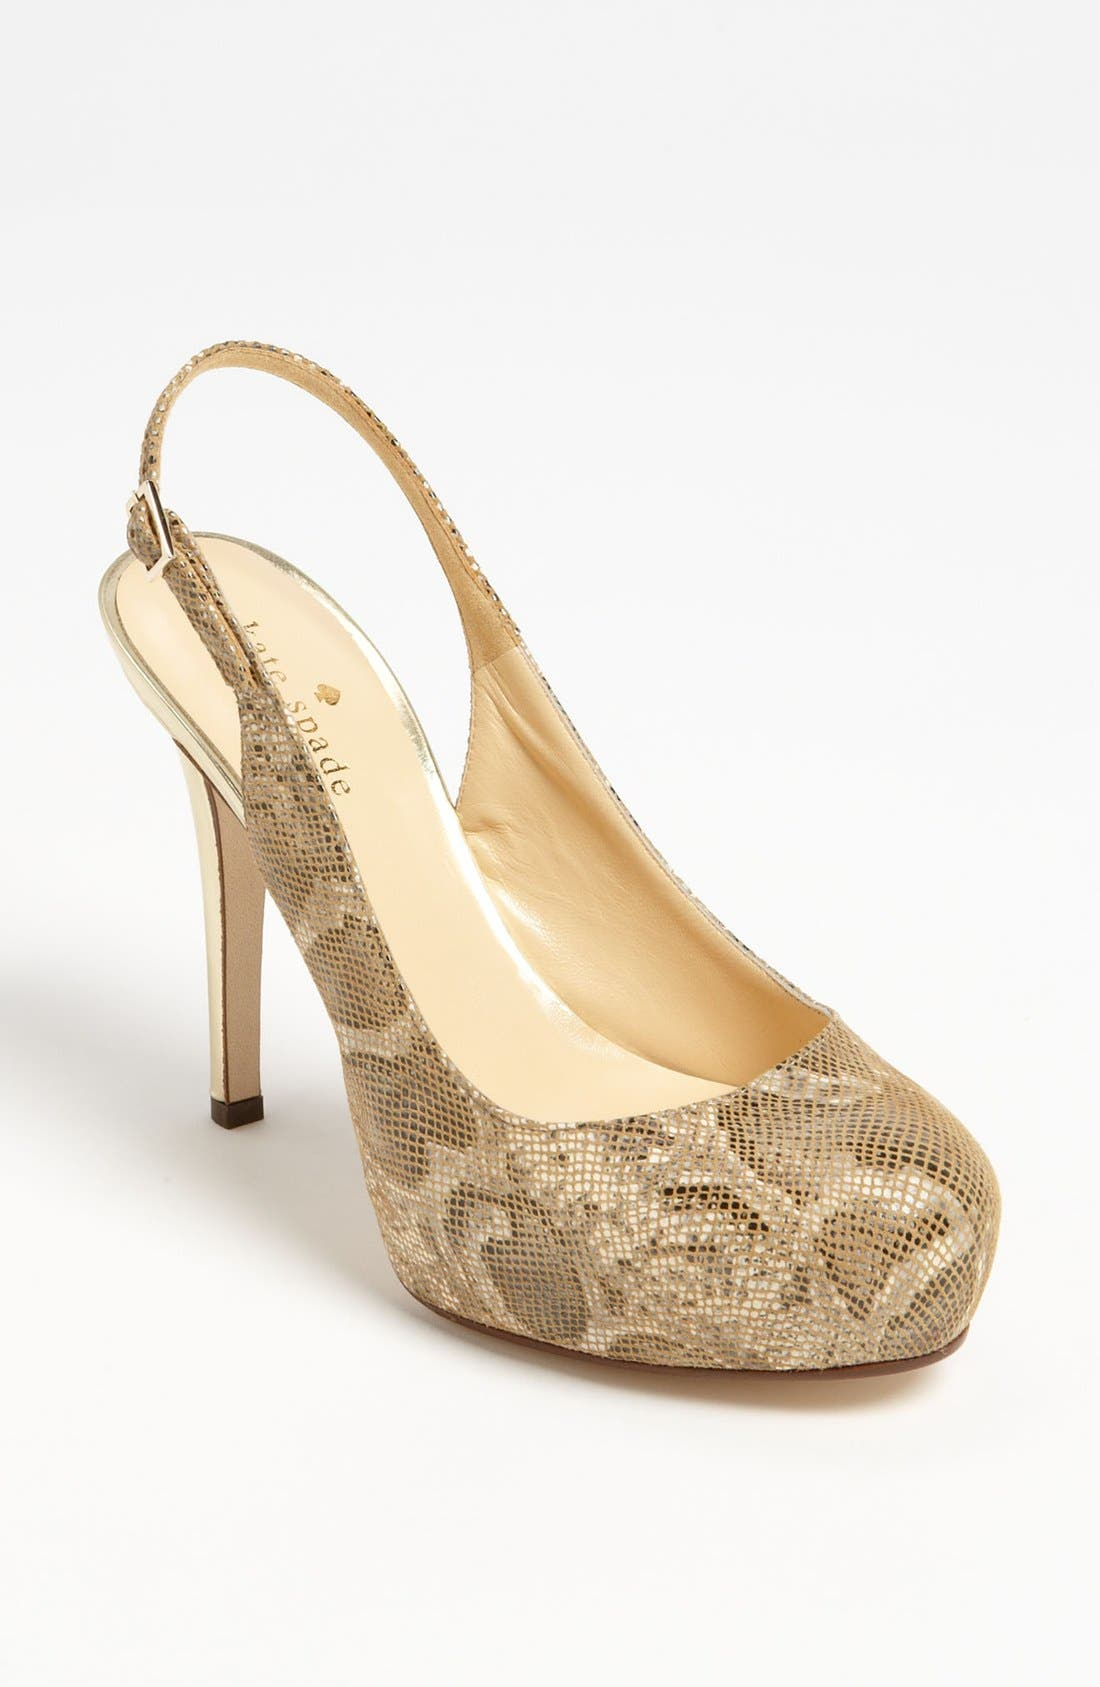 Alternate Image 1 Selected - kate spade new york 'leona' pump